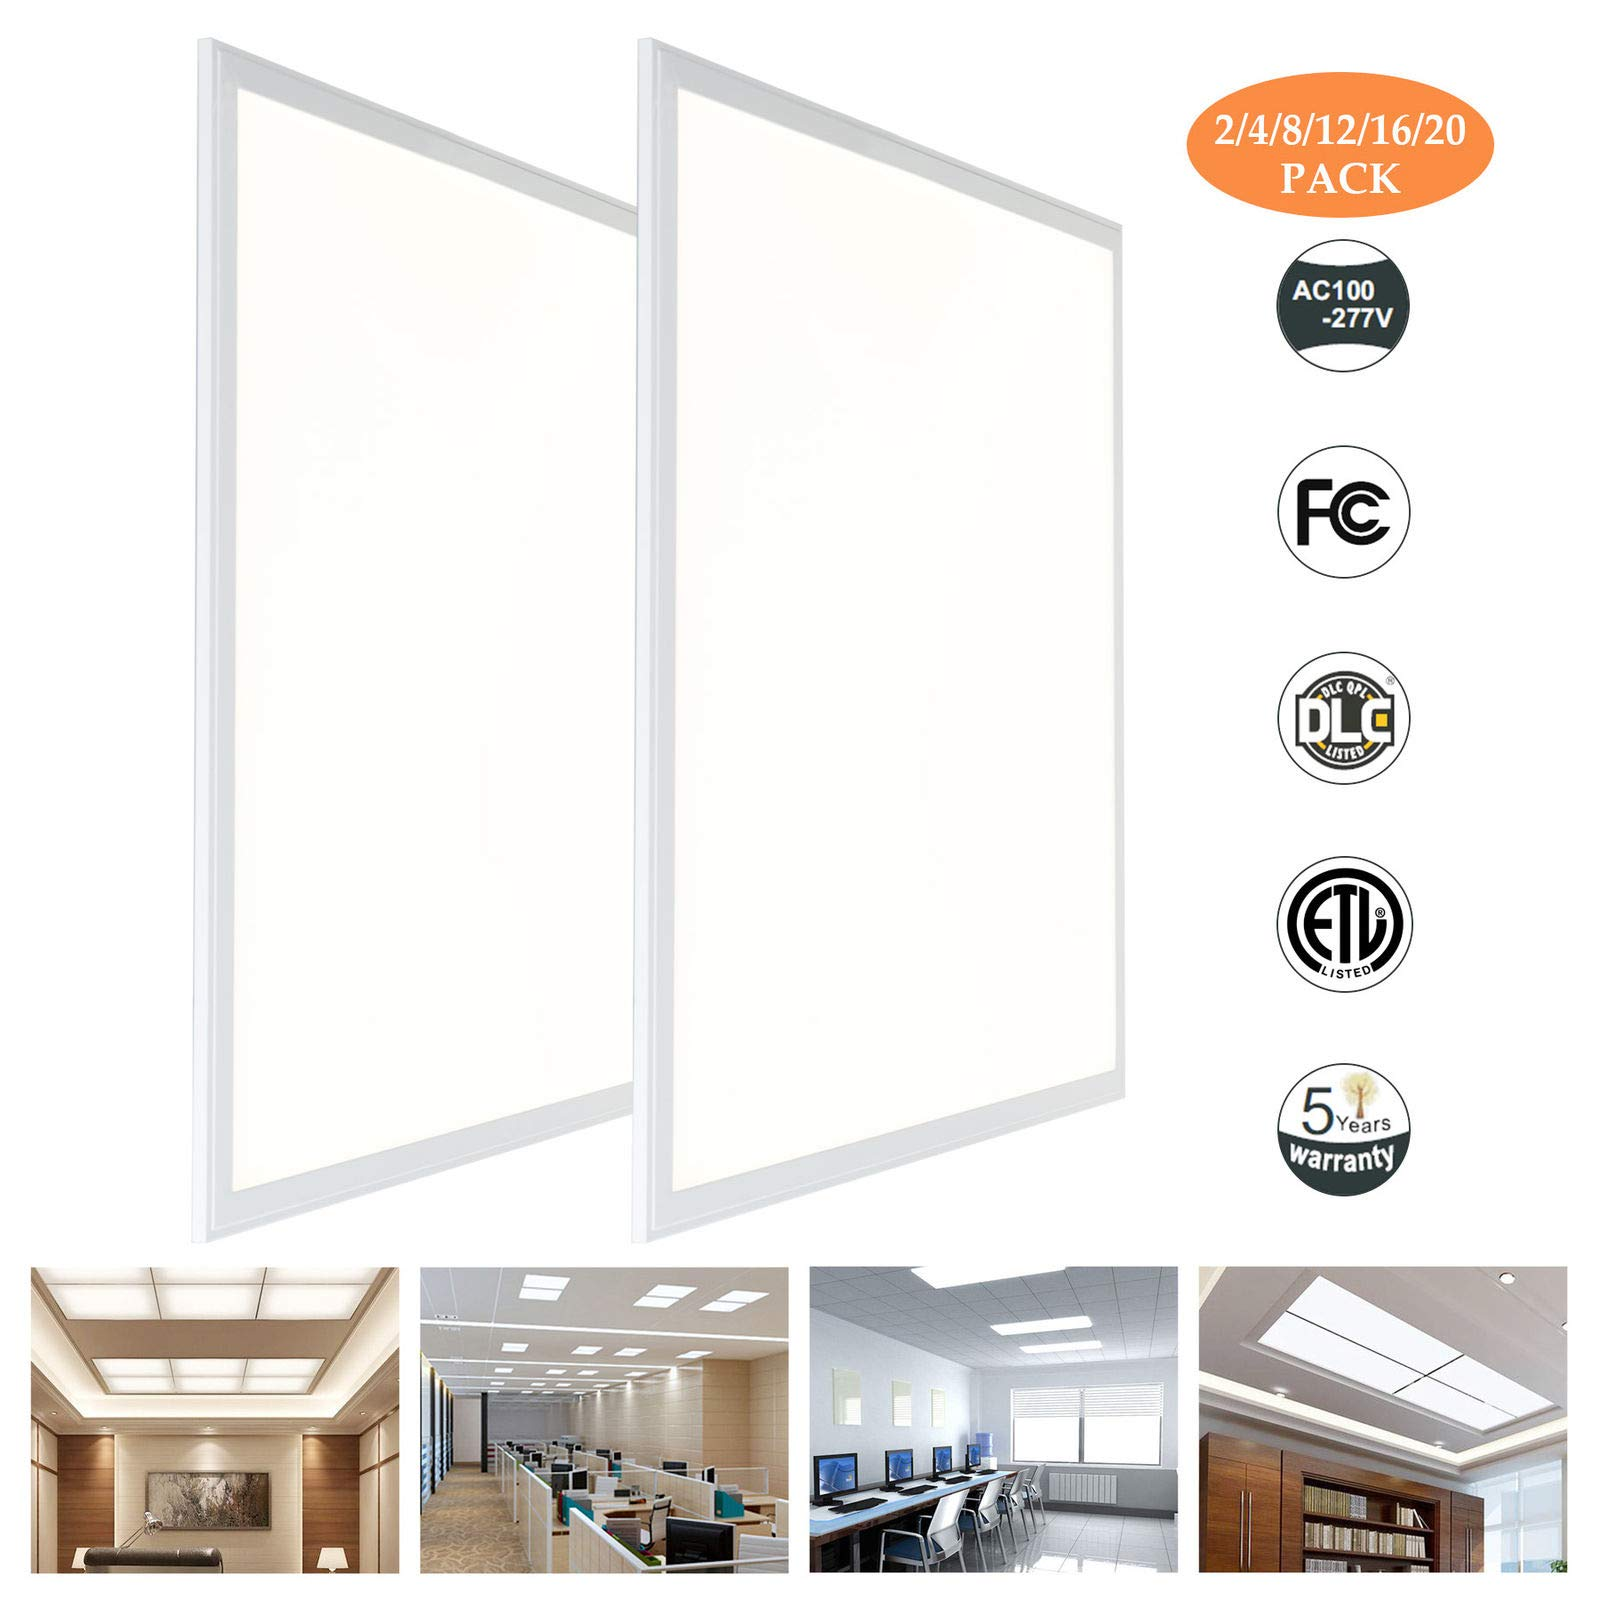 Culver LED 2 x 2ft. LED Panel Light Ceiling White Frame 48W Dimmable, 600600MM 4000 Kelvin (2 Pack)